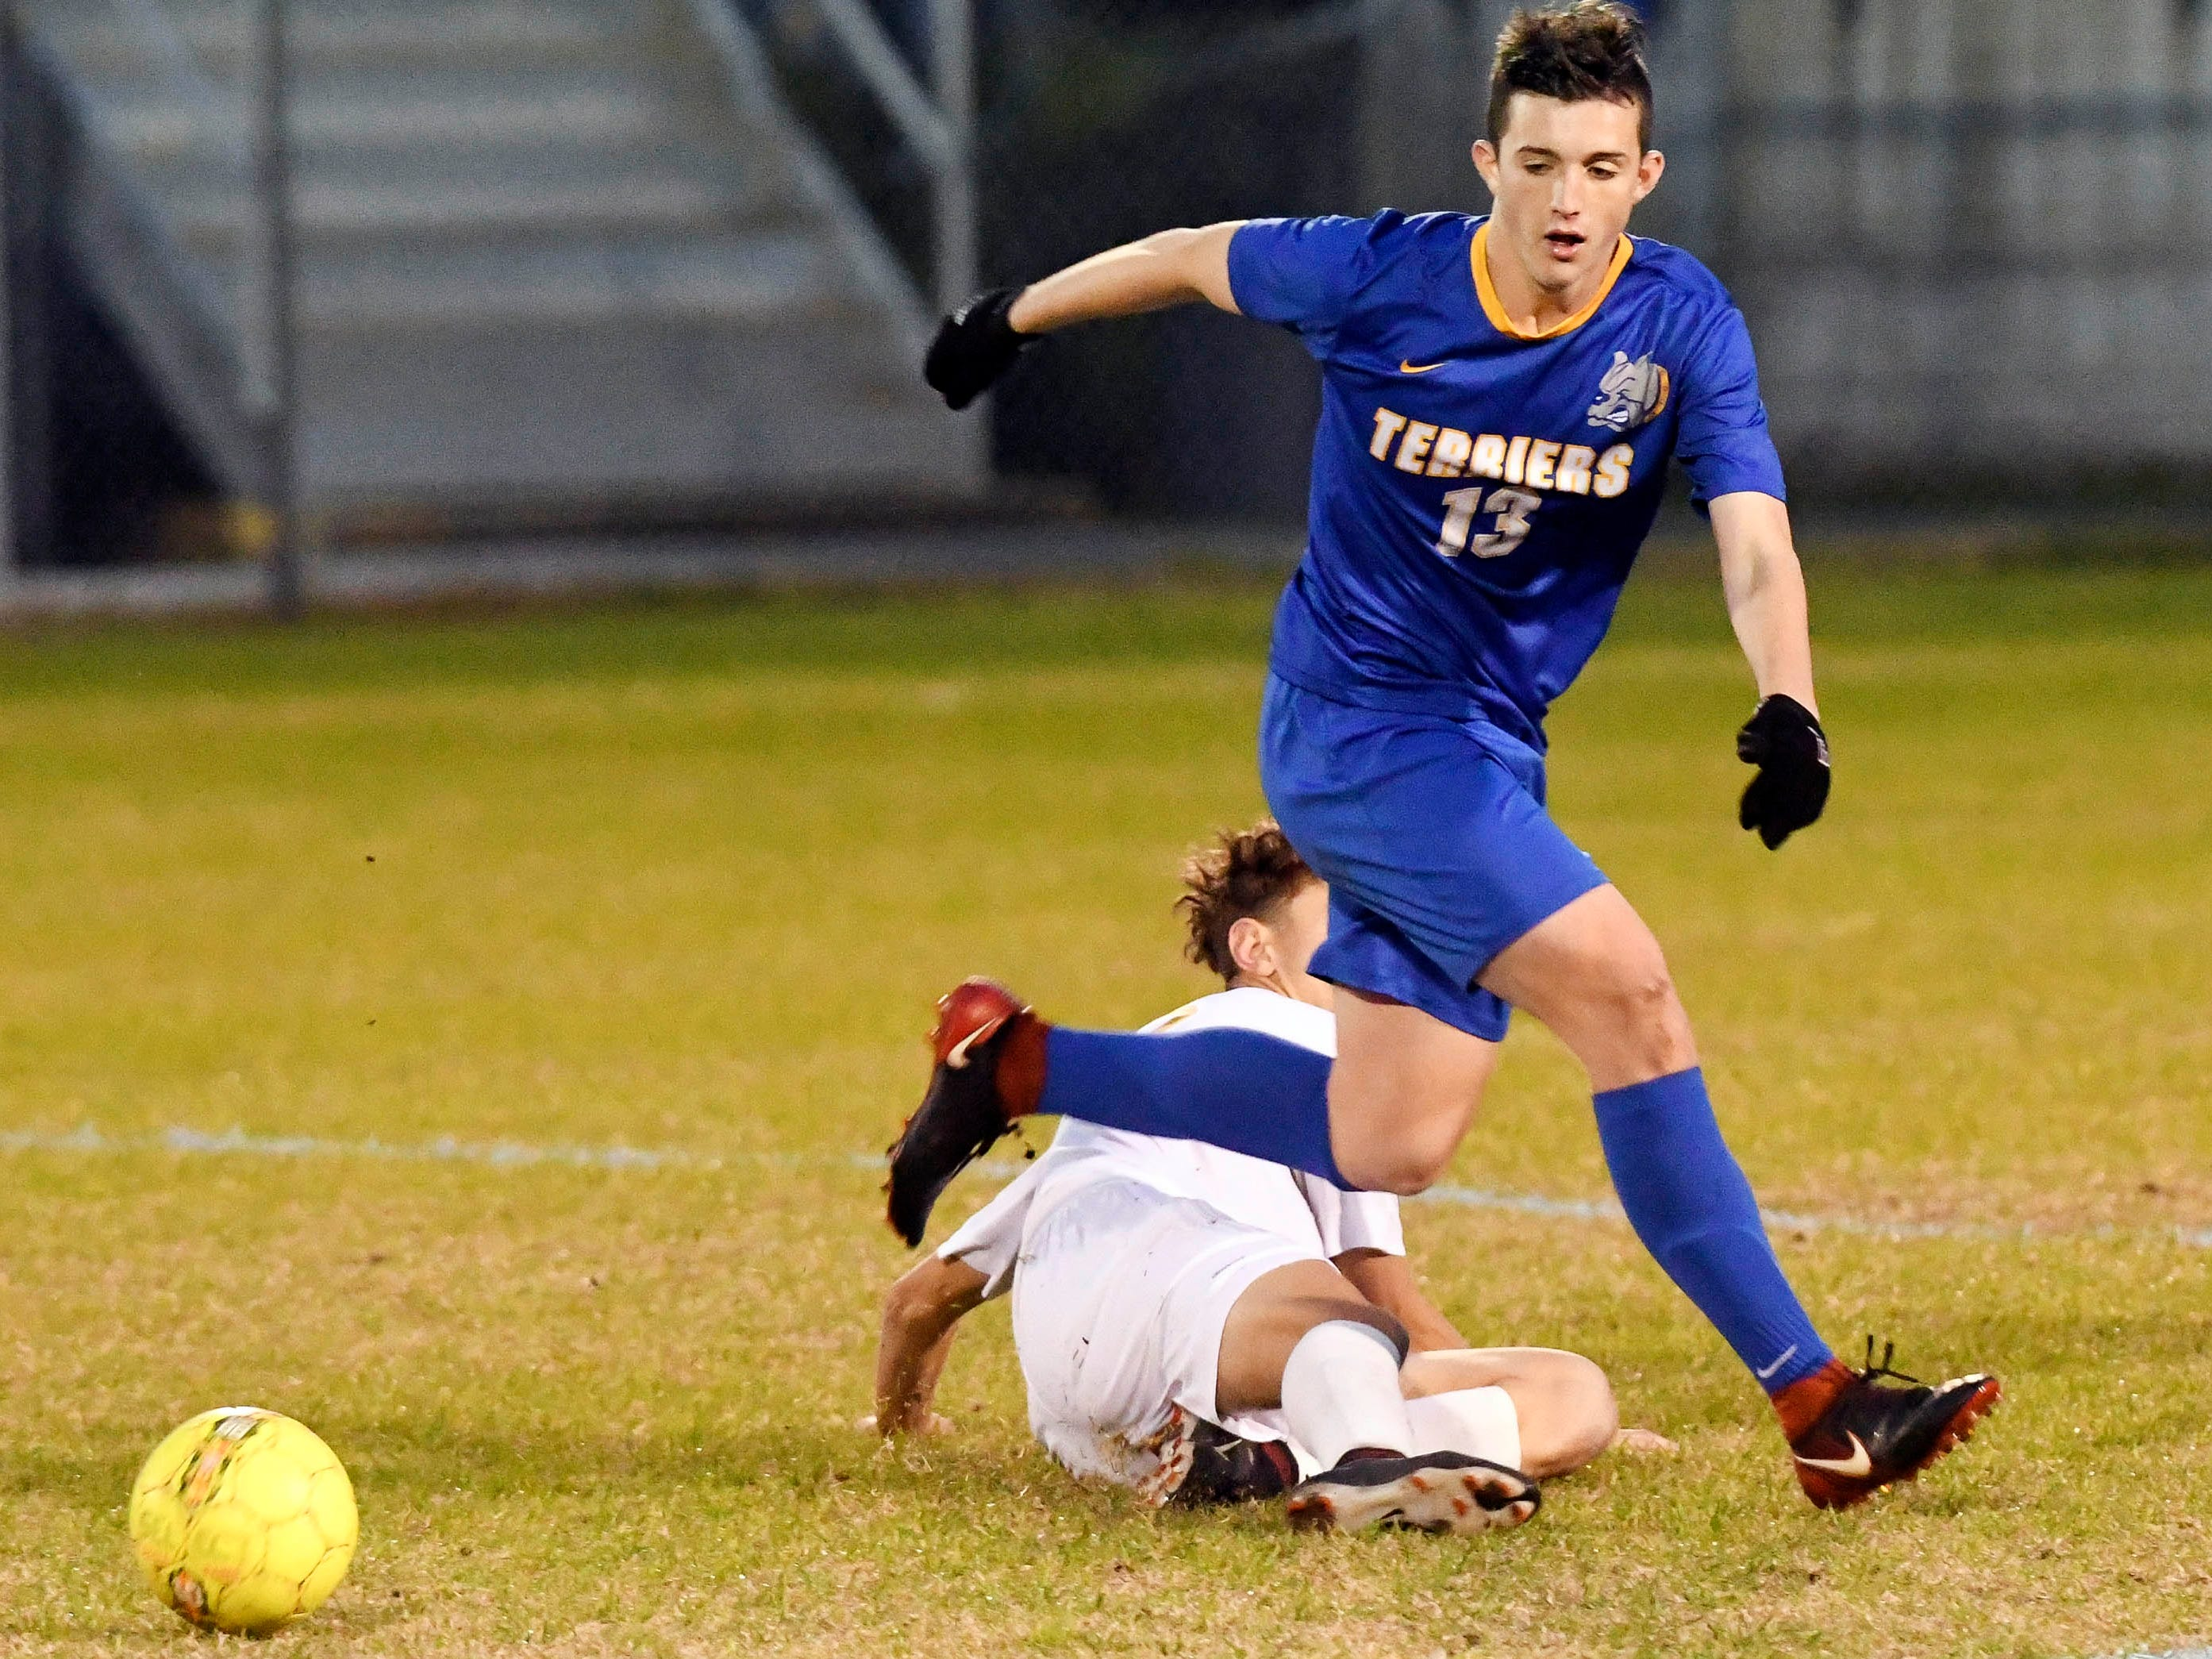 Titusville's Jeremy Pless gets past an Eau Gallie defender during Wednesday's District 12, Class 3A semifinal at McLarty Stadium